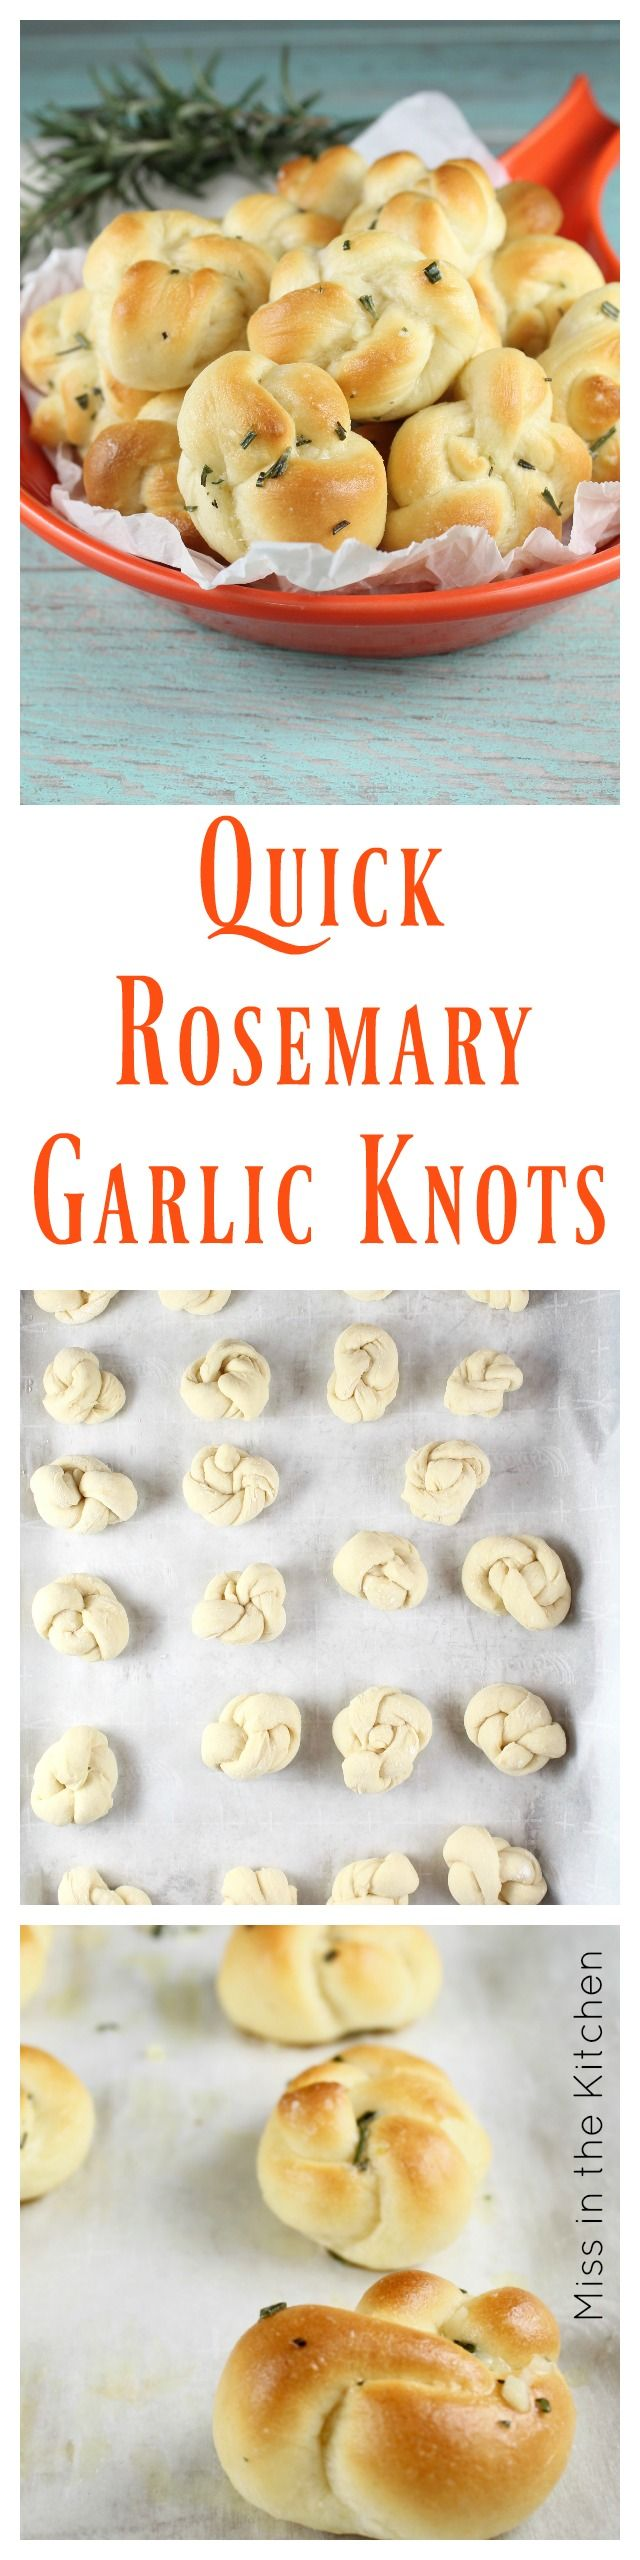 Quick Rosemary Garlic Knots Recipe ~ Perfect dinner roll or serve as an appetizer. Made with Red Star Yeast - MissintheKitchen.com #ad